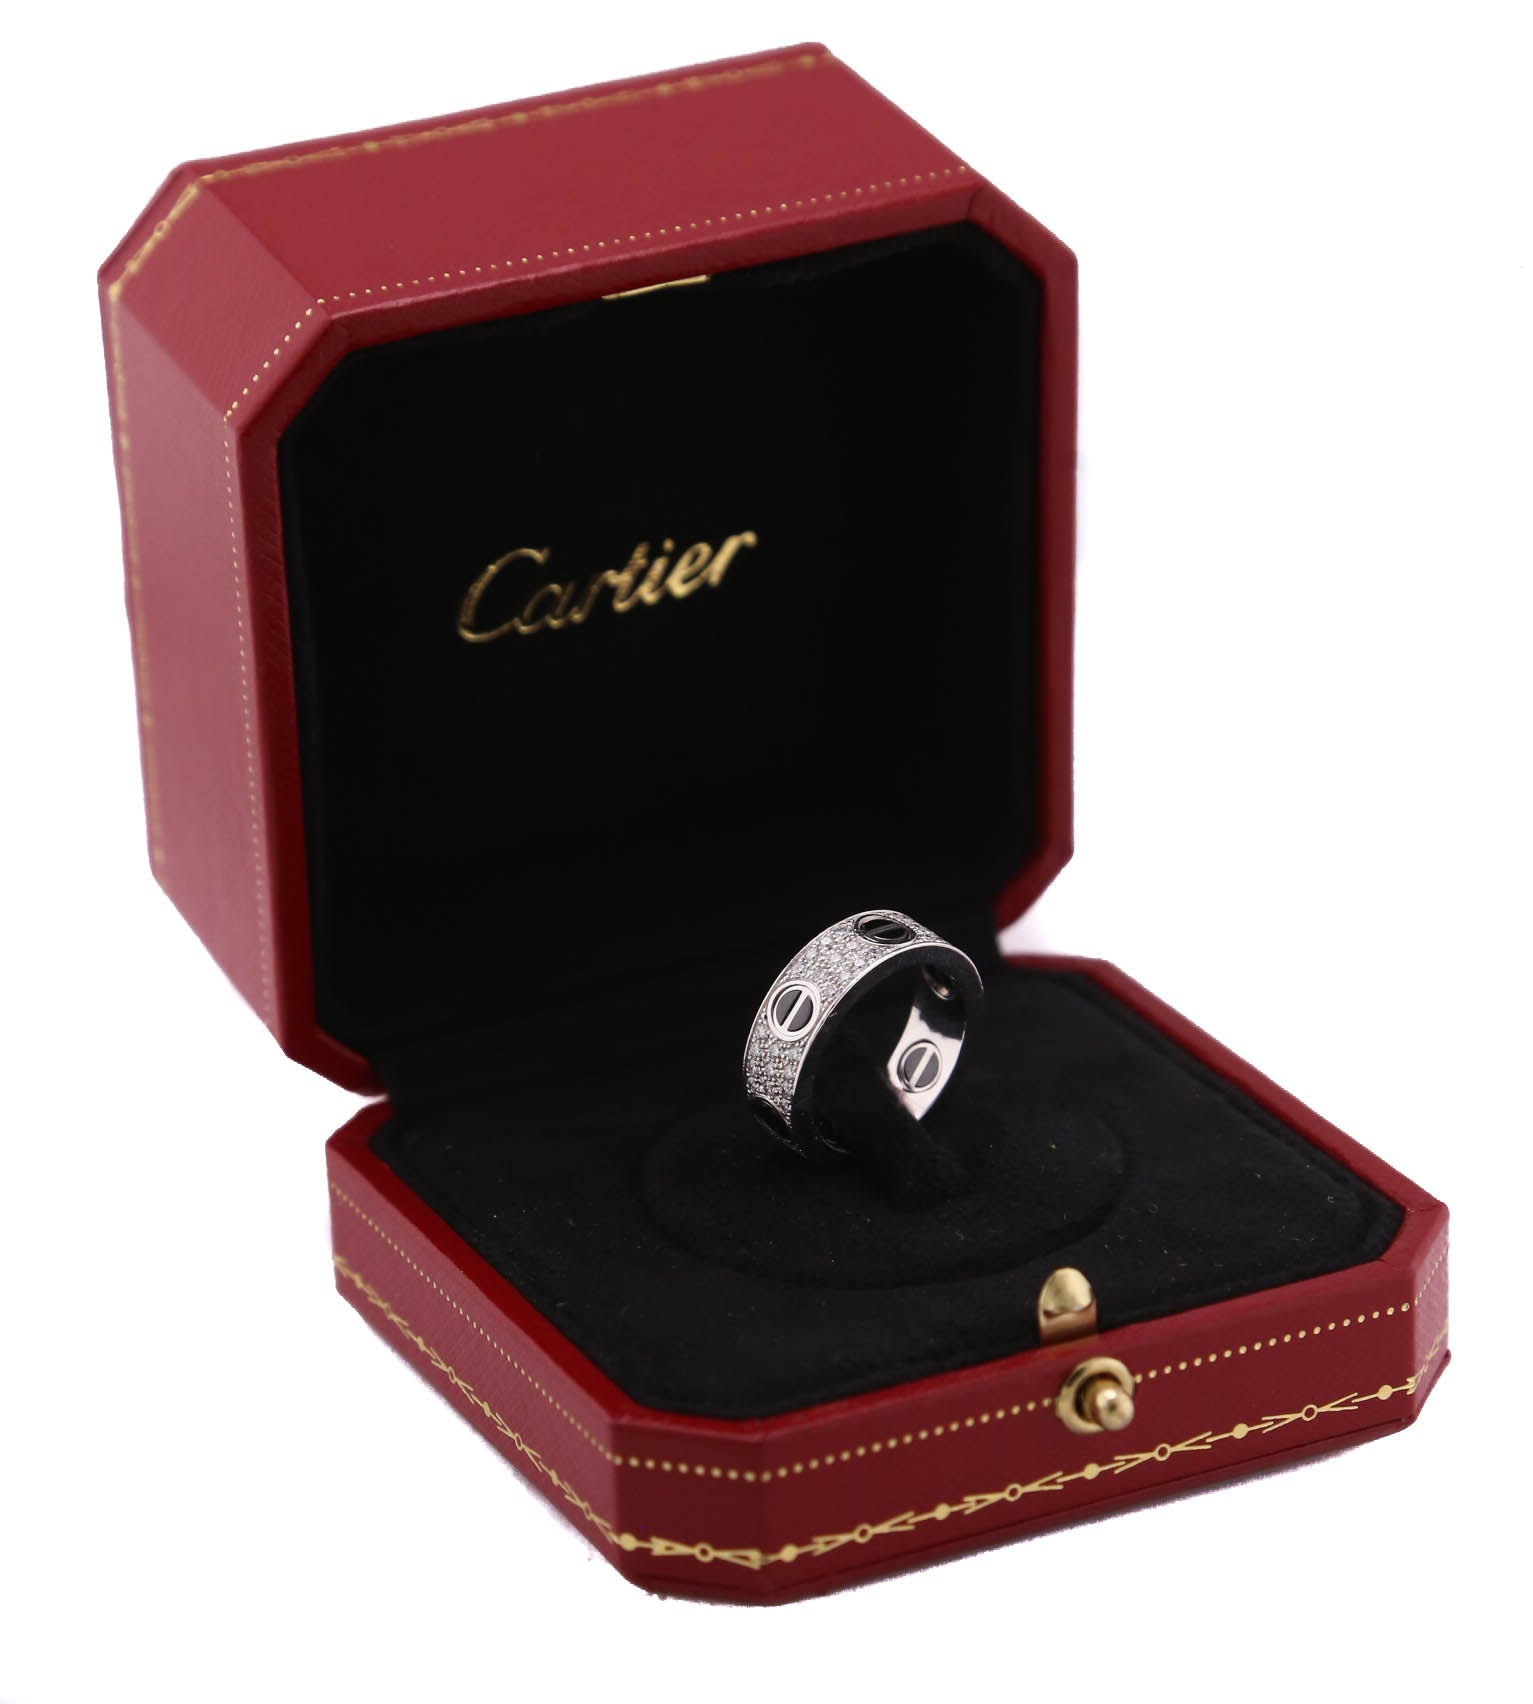 Cartier Love Diamond Ceramic 18K 750 White Gold Screw Band Ring Size 53 6.25